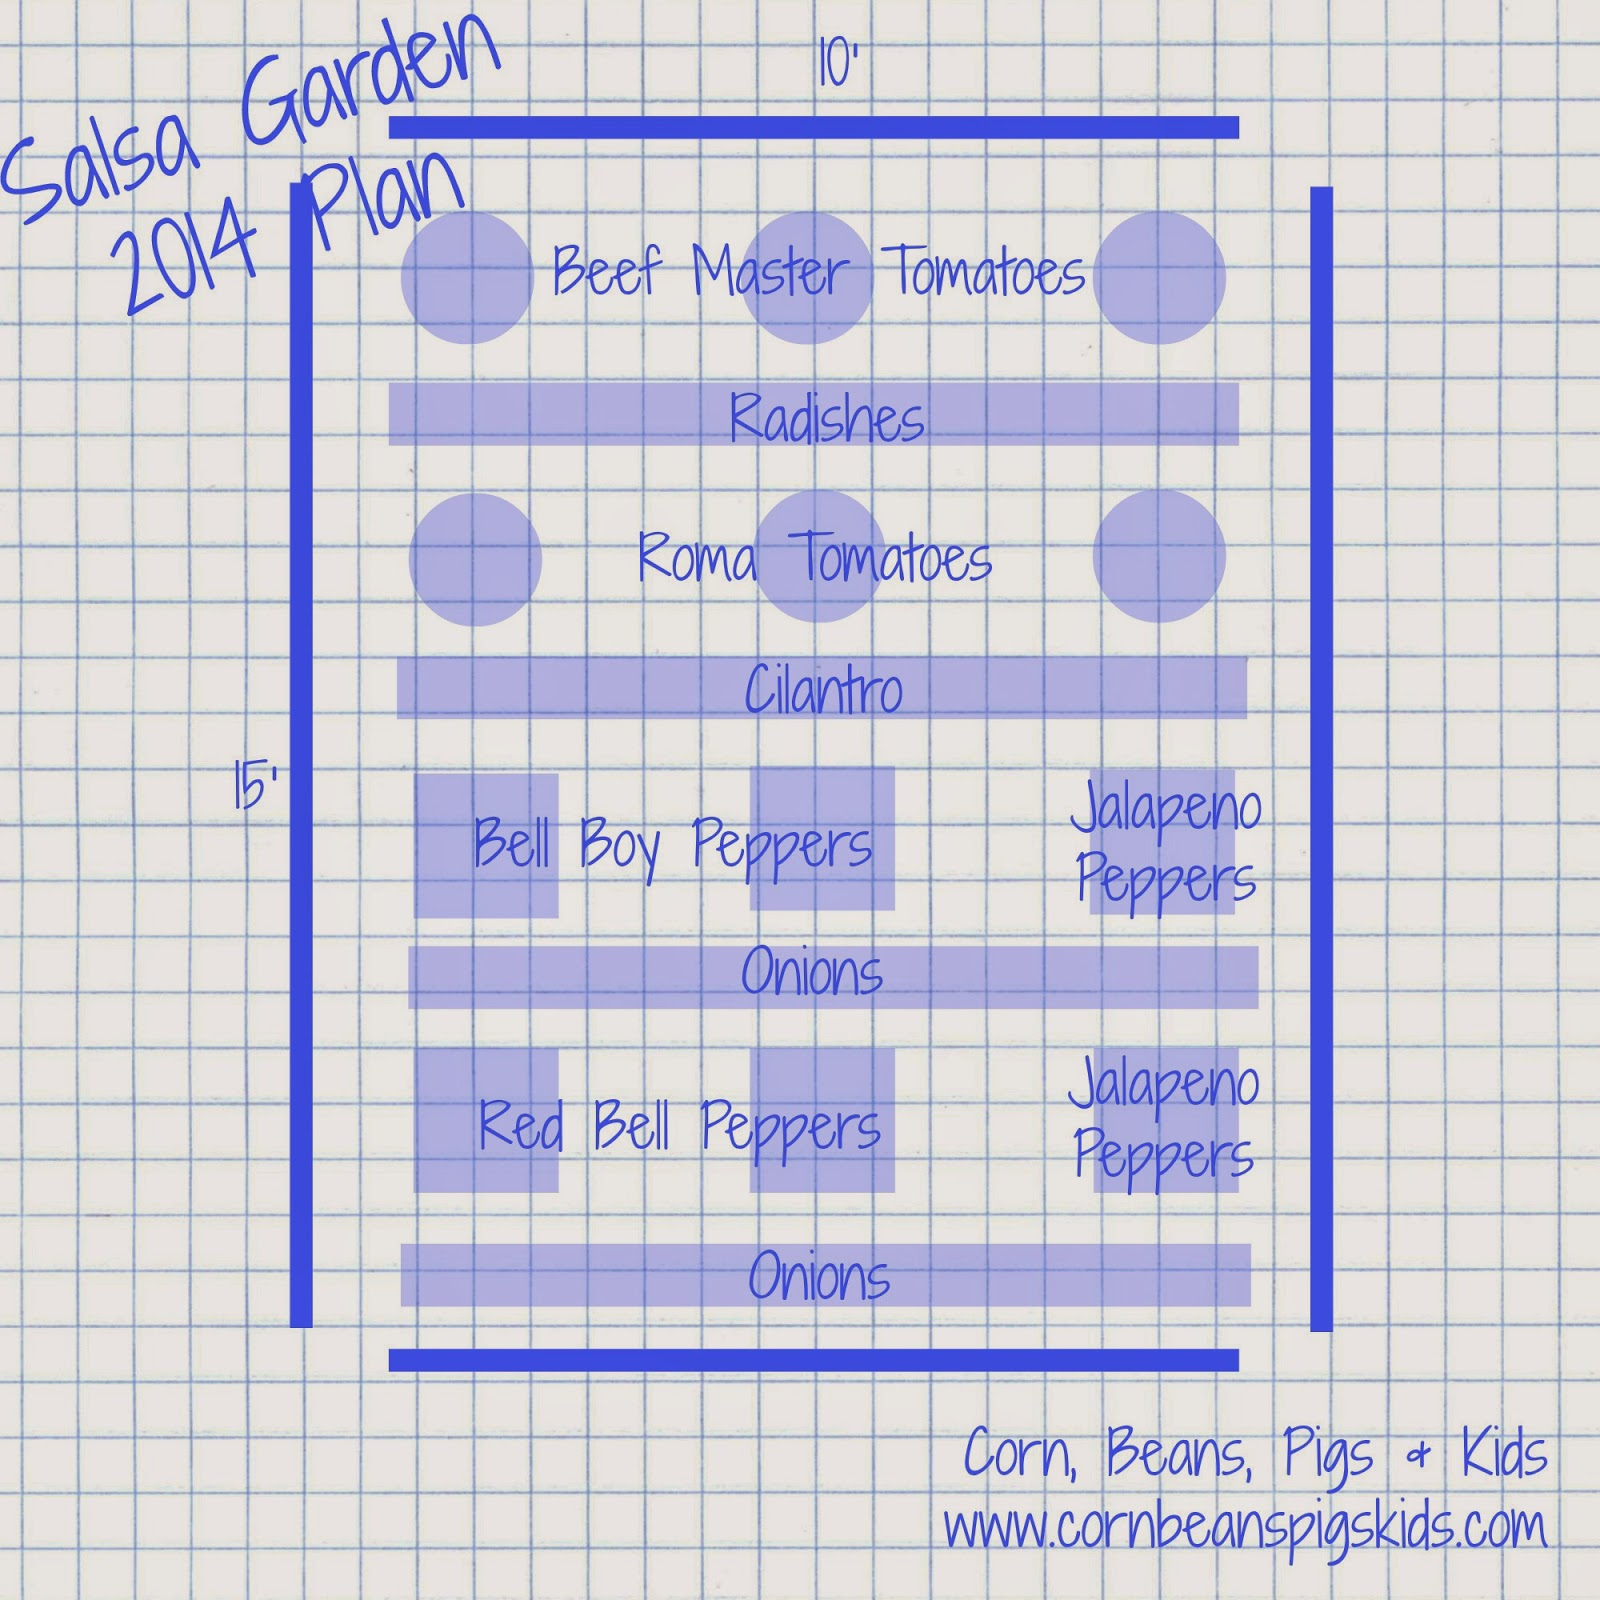 Salsa Garden Plan - Intercropping Vegetable Garden